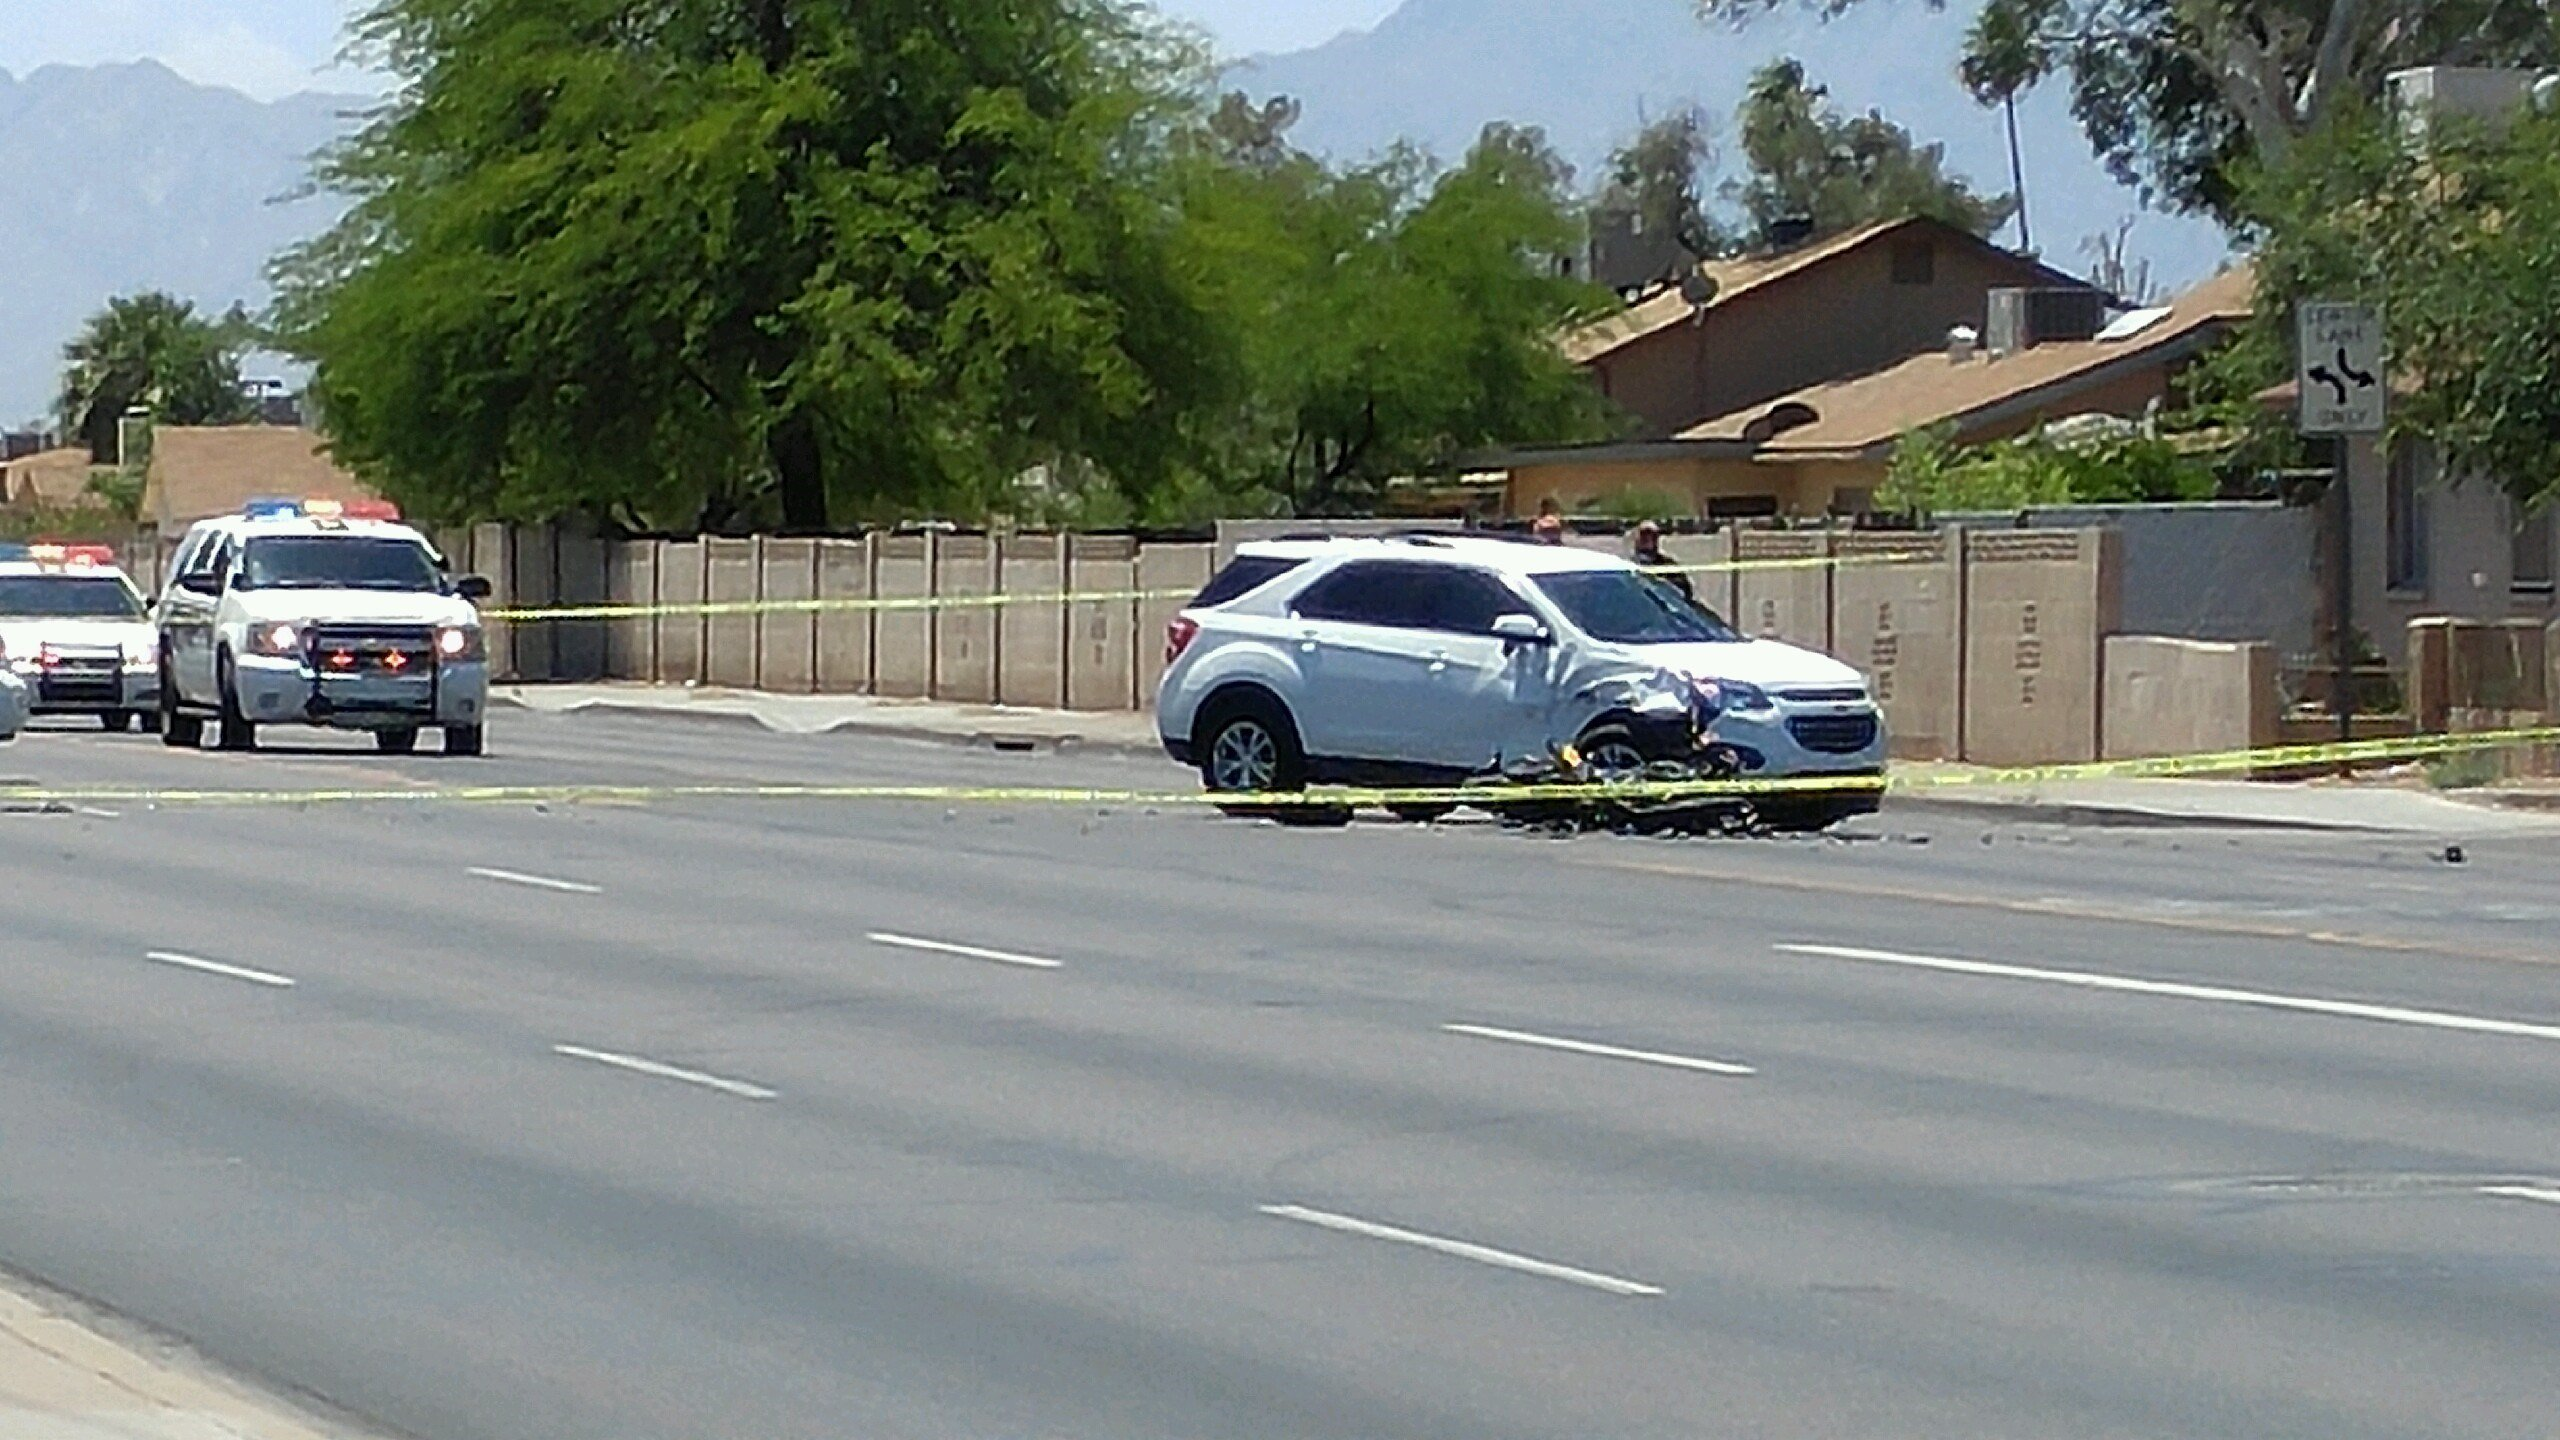 A motorcyclist is left in serious injury after an accident in Phoenix. (Source: 3TV/CBS 5)